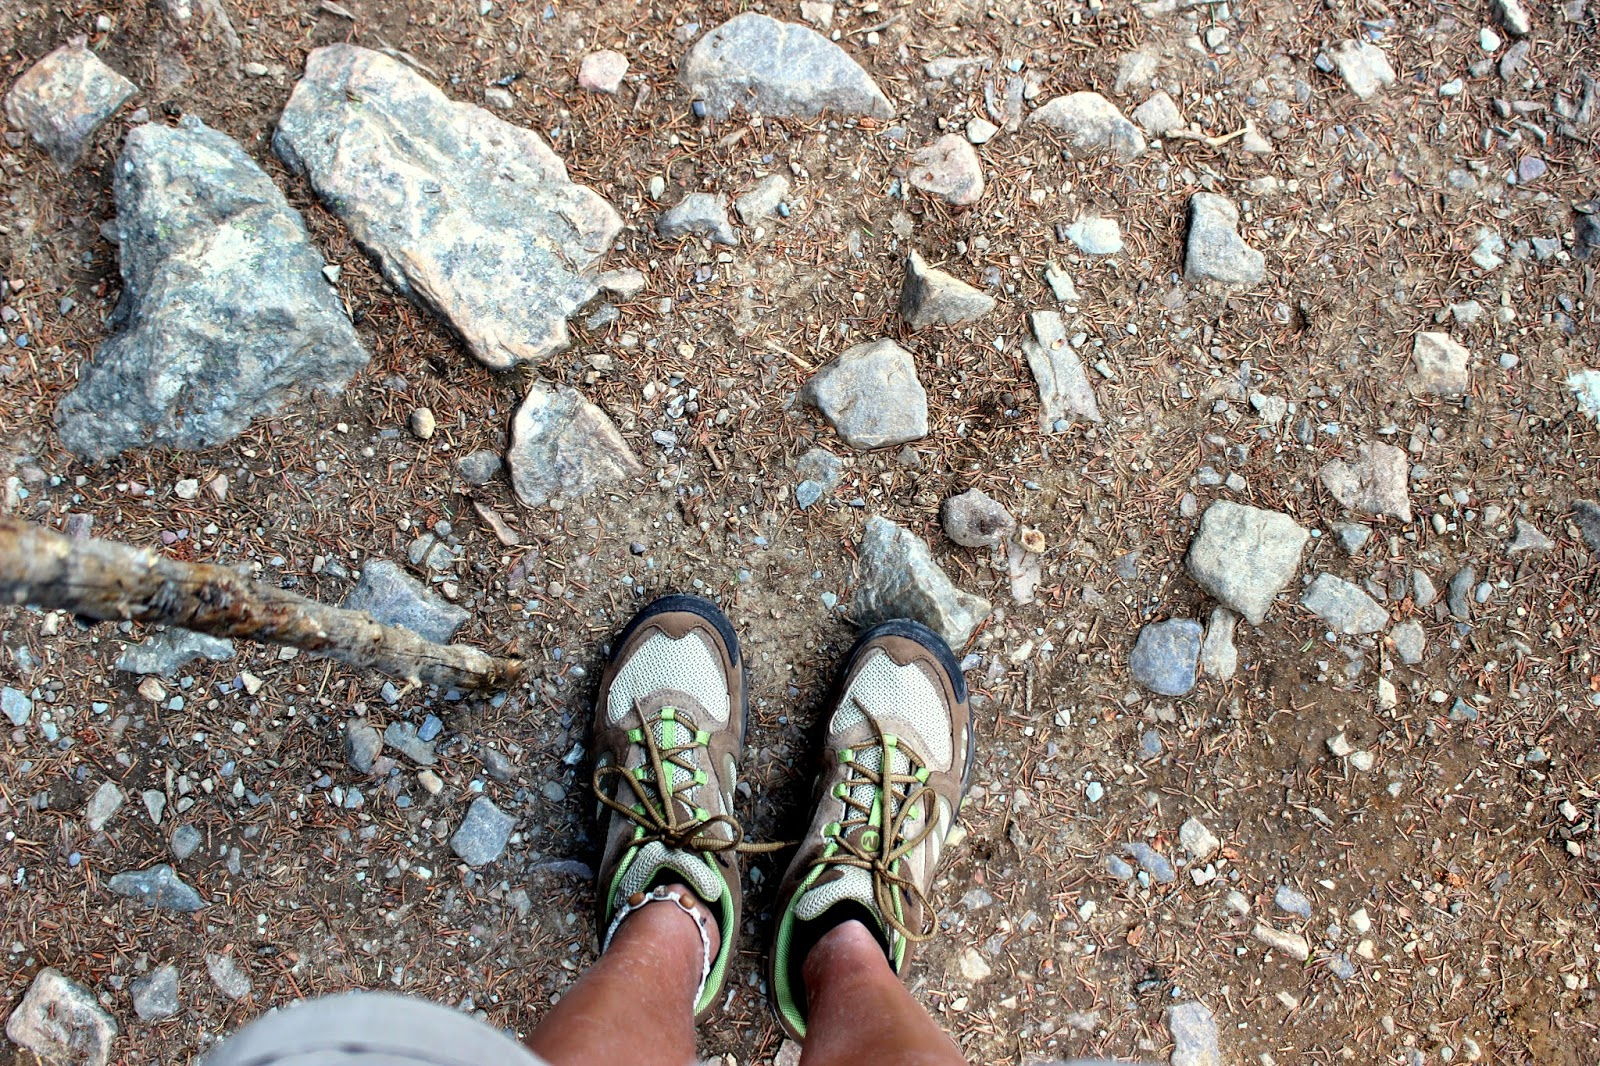 Yes, my very first pair of Hiking Shoes!